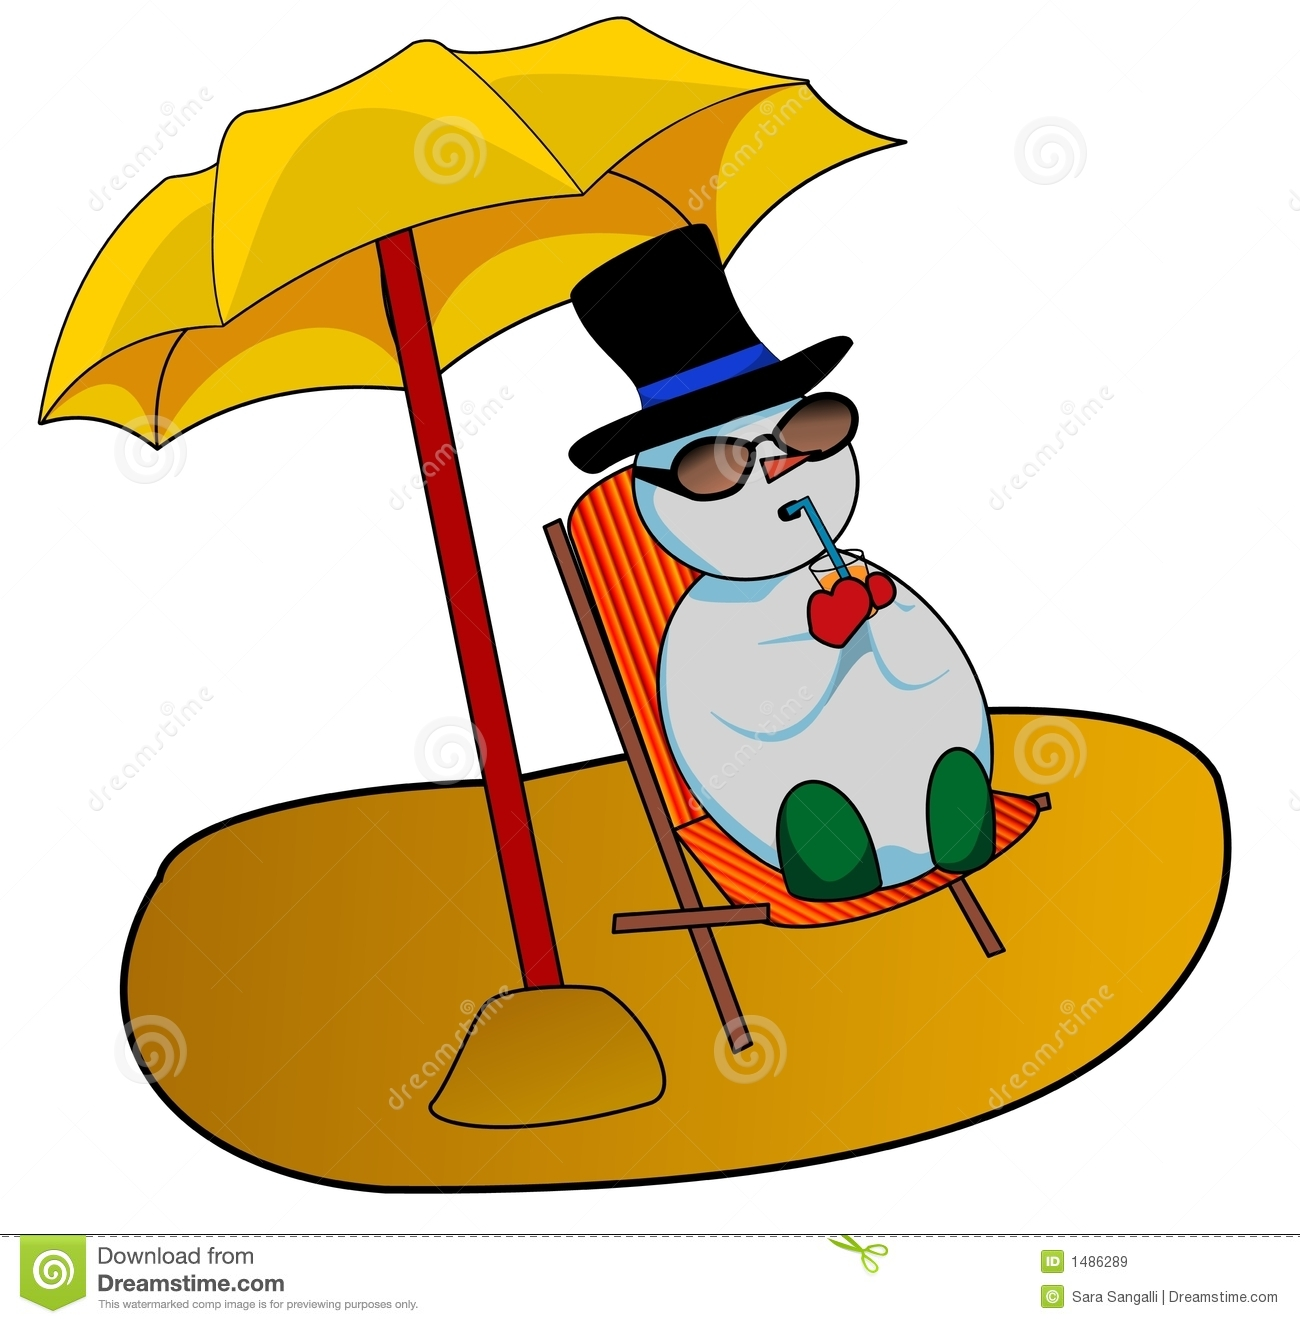 Illustration of a snowman sunbathing and relaxing on the beach .